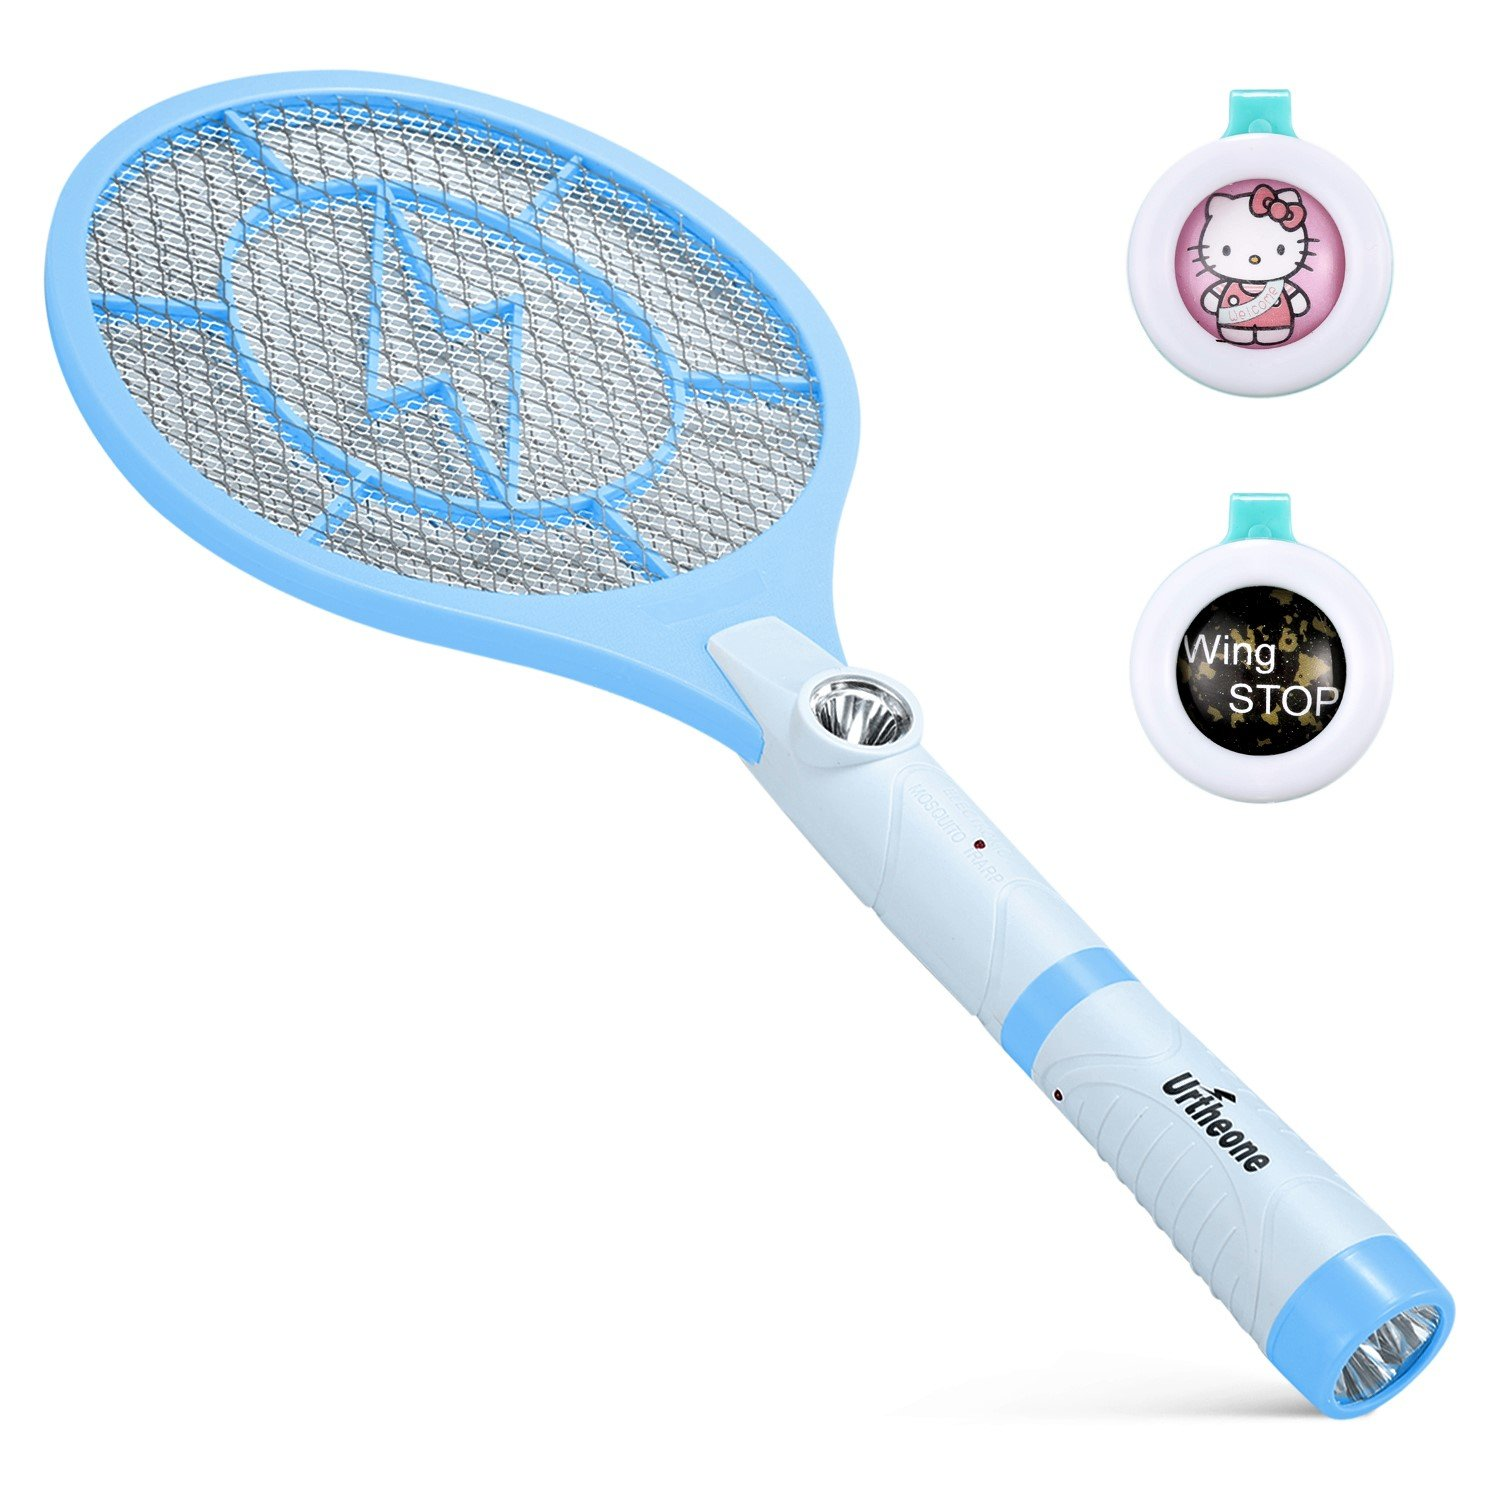 Urtheone Bug Zapper, Rechargeable Electric Fly Swatter Handheld Mosquito Insect Killer, 3800 Volt Mosquito Zapper Racket with Detachable Flash Light, Suitable for Indoor, Travel, Campings and Outdoor